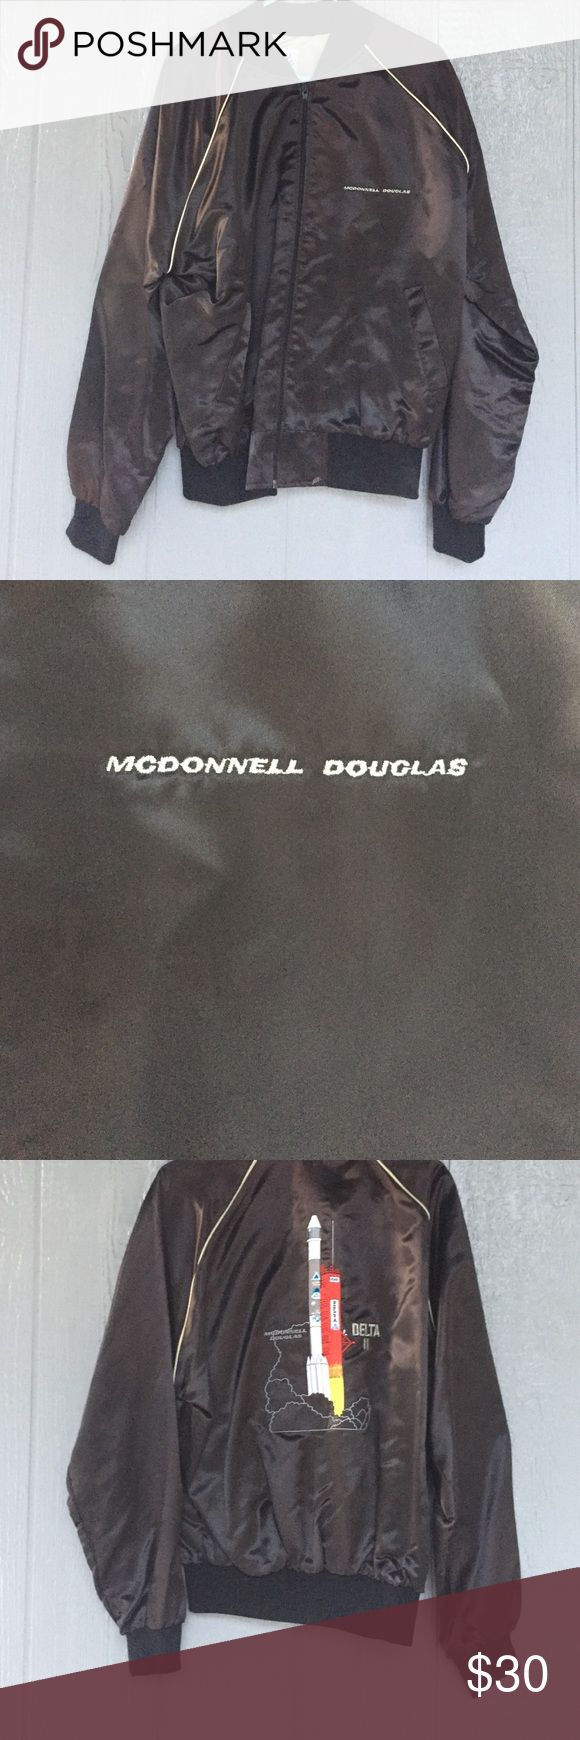 Vintage High five sportswear bomber jacket Made in USA, McDonnell Douglas with delta II spaceship on back high fice sportswear Jackets & Coats Bomber & Varsity